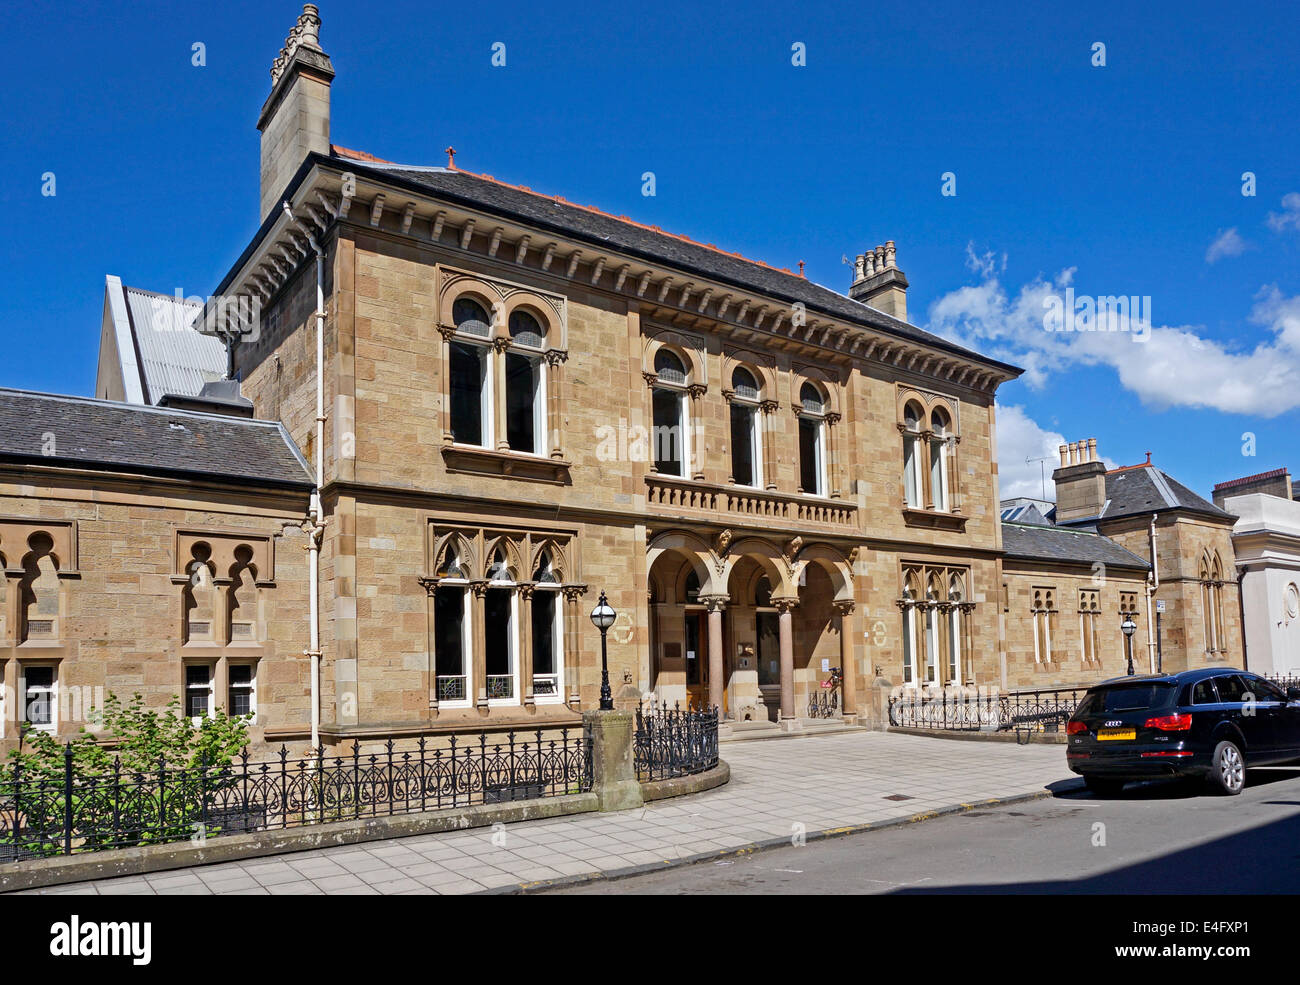 Entrance To Western Baths Club In Glasgow West End Scotland Stock Photo Royalty Free Image